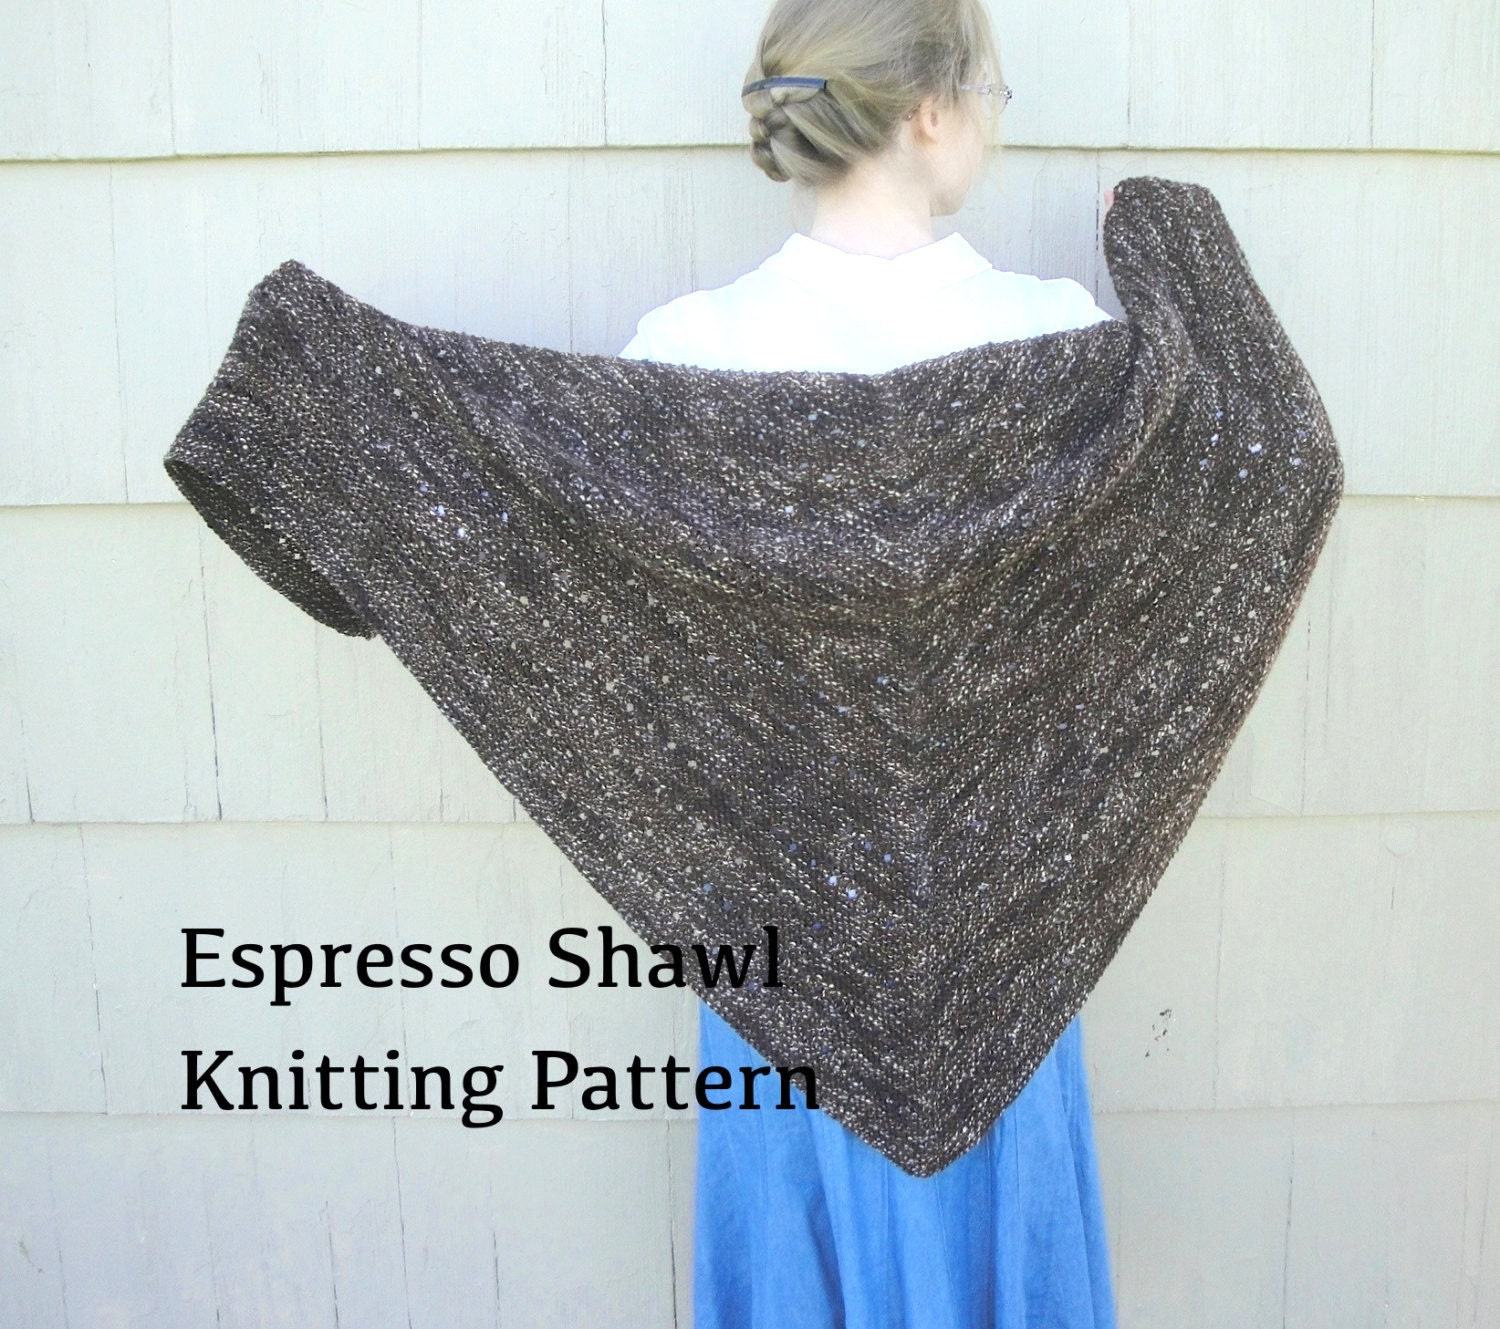 Knitted Prayer Shawl Patterns : Espresso Shawl PDF Knitting Pattern, Easy Knit, Worsted ...